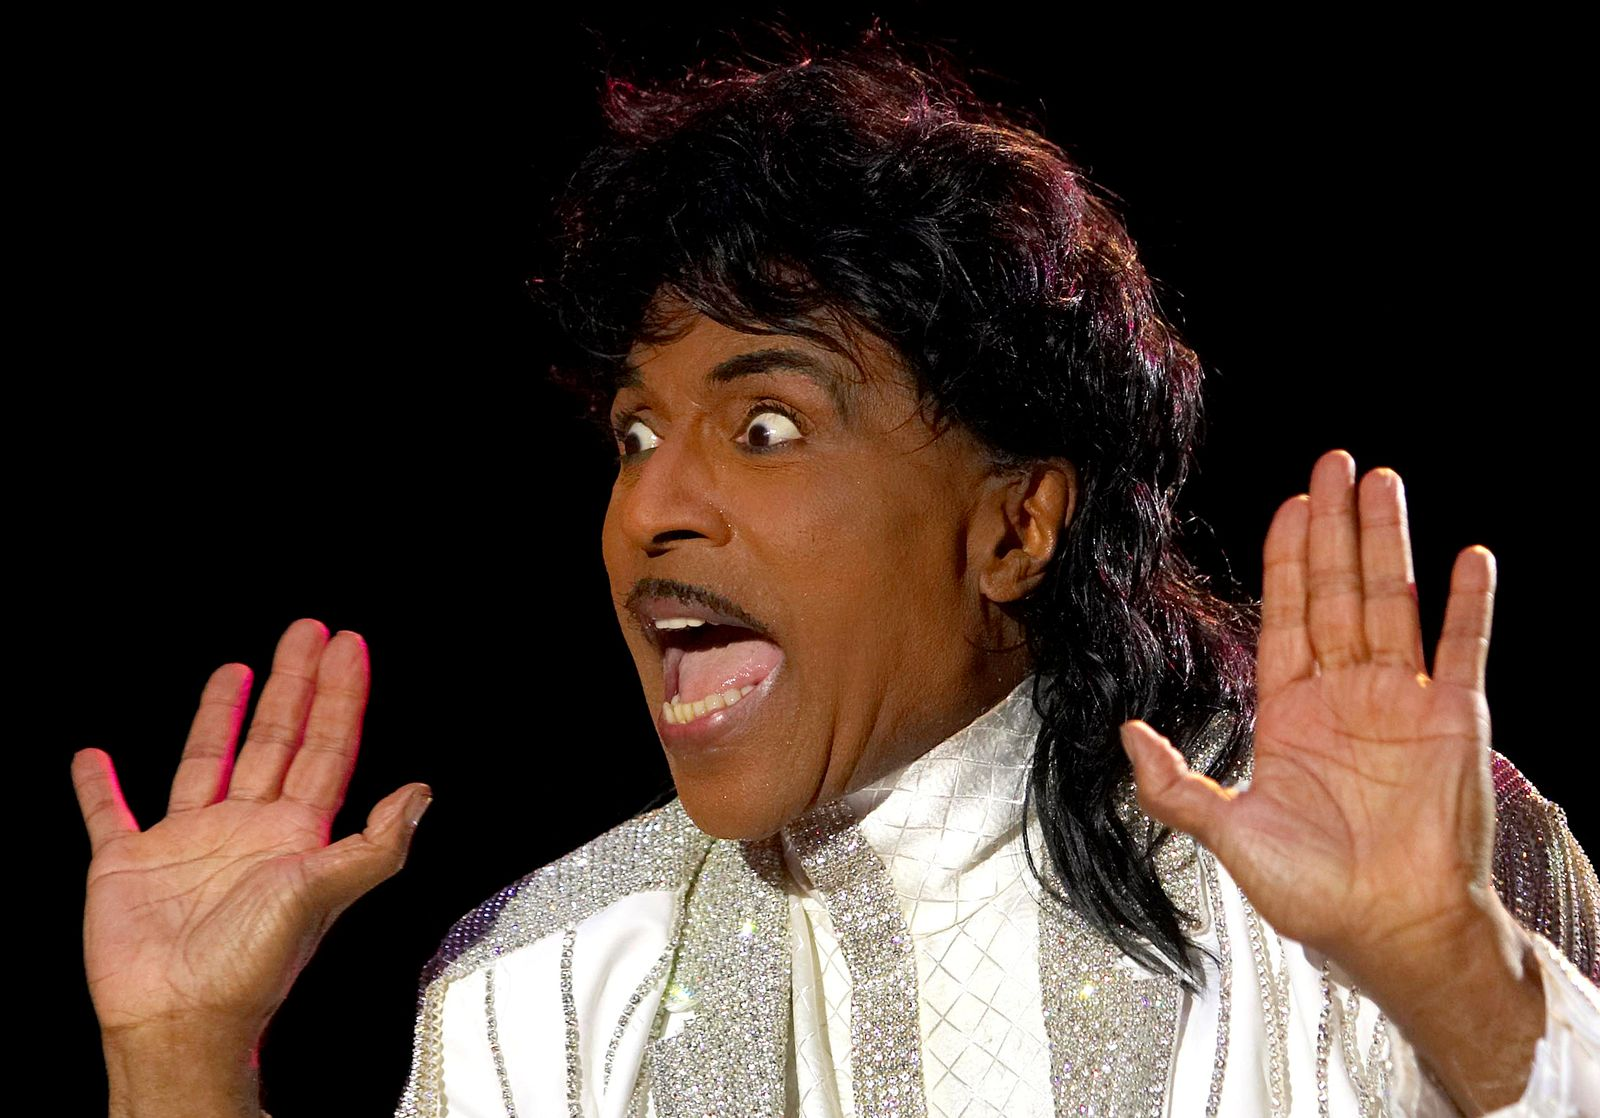 FILE PHOTO: Entertainer Little Richard performs on stage at Crossroad festival in Gijon, northern Spain.